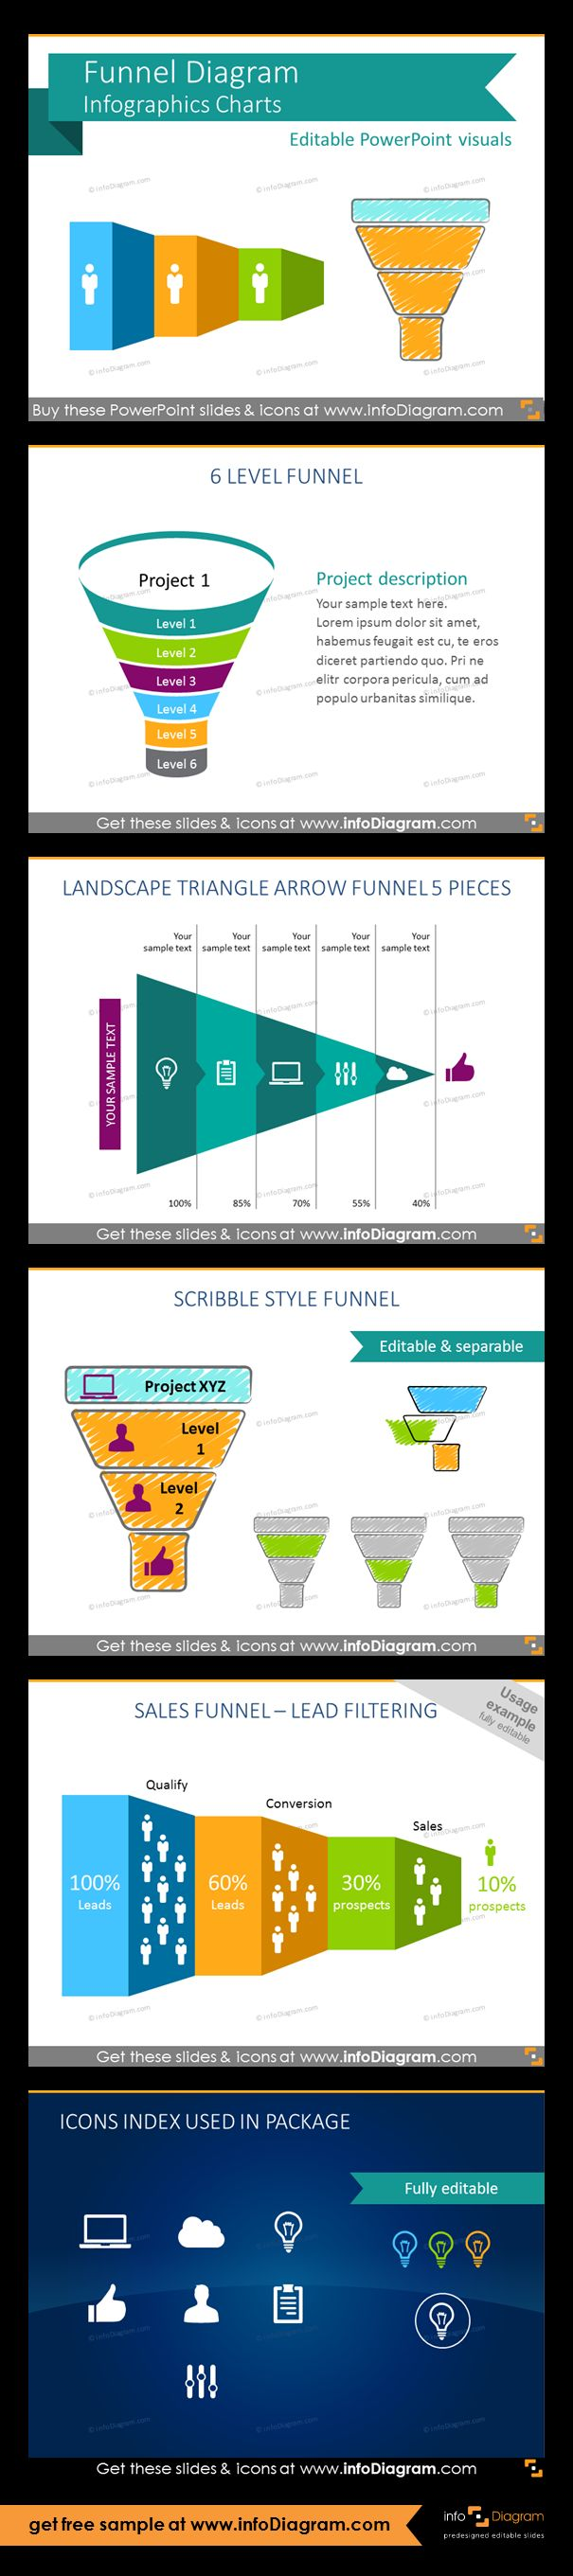 Predesigned Infographics shapes for showing various funnel processes on a slide. Suitable especially for marketing, sales and business development presentations. Marketing 6-level selling funnel, landscape triangle arrow funnel, scribble style funnel - example of editing, sales process pipeline - lead filtering, set of flat icon symbols for infographics: cloud, computer, bulb, thumbs up, man, document.